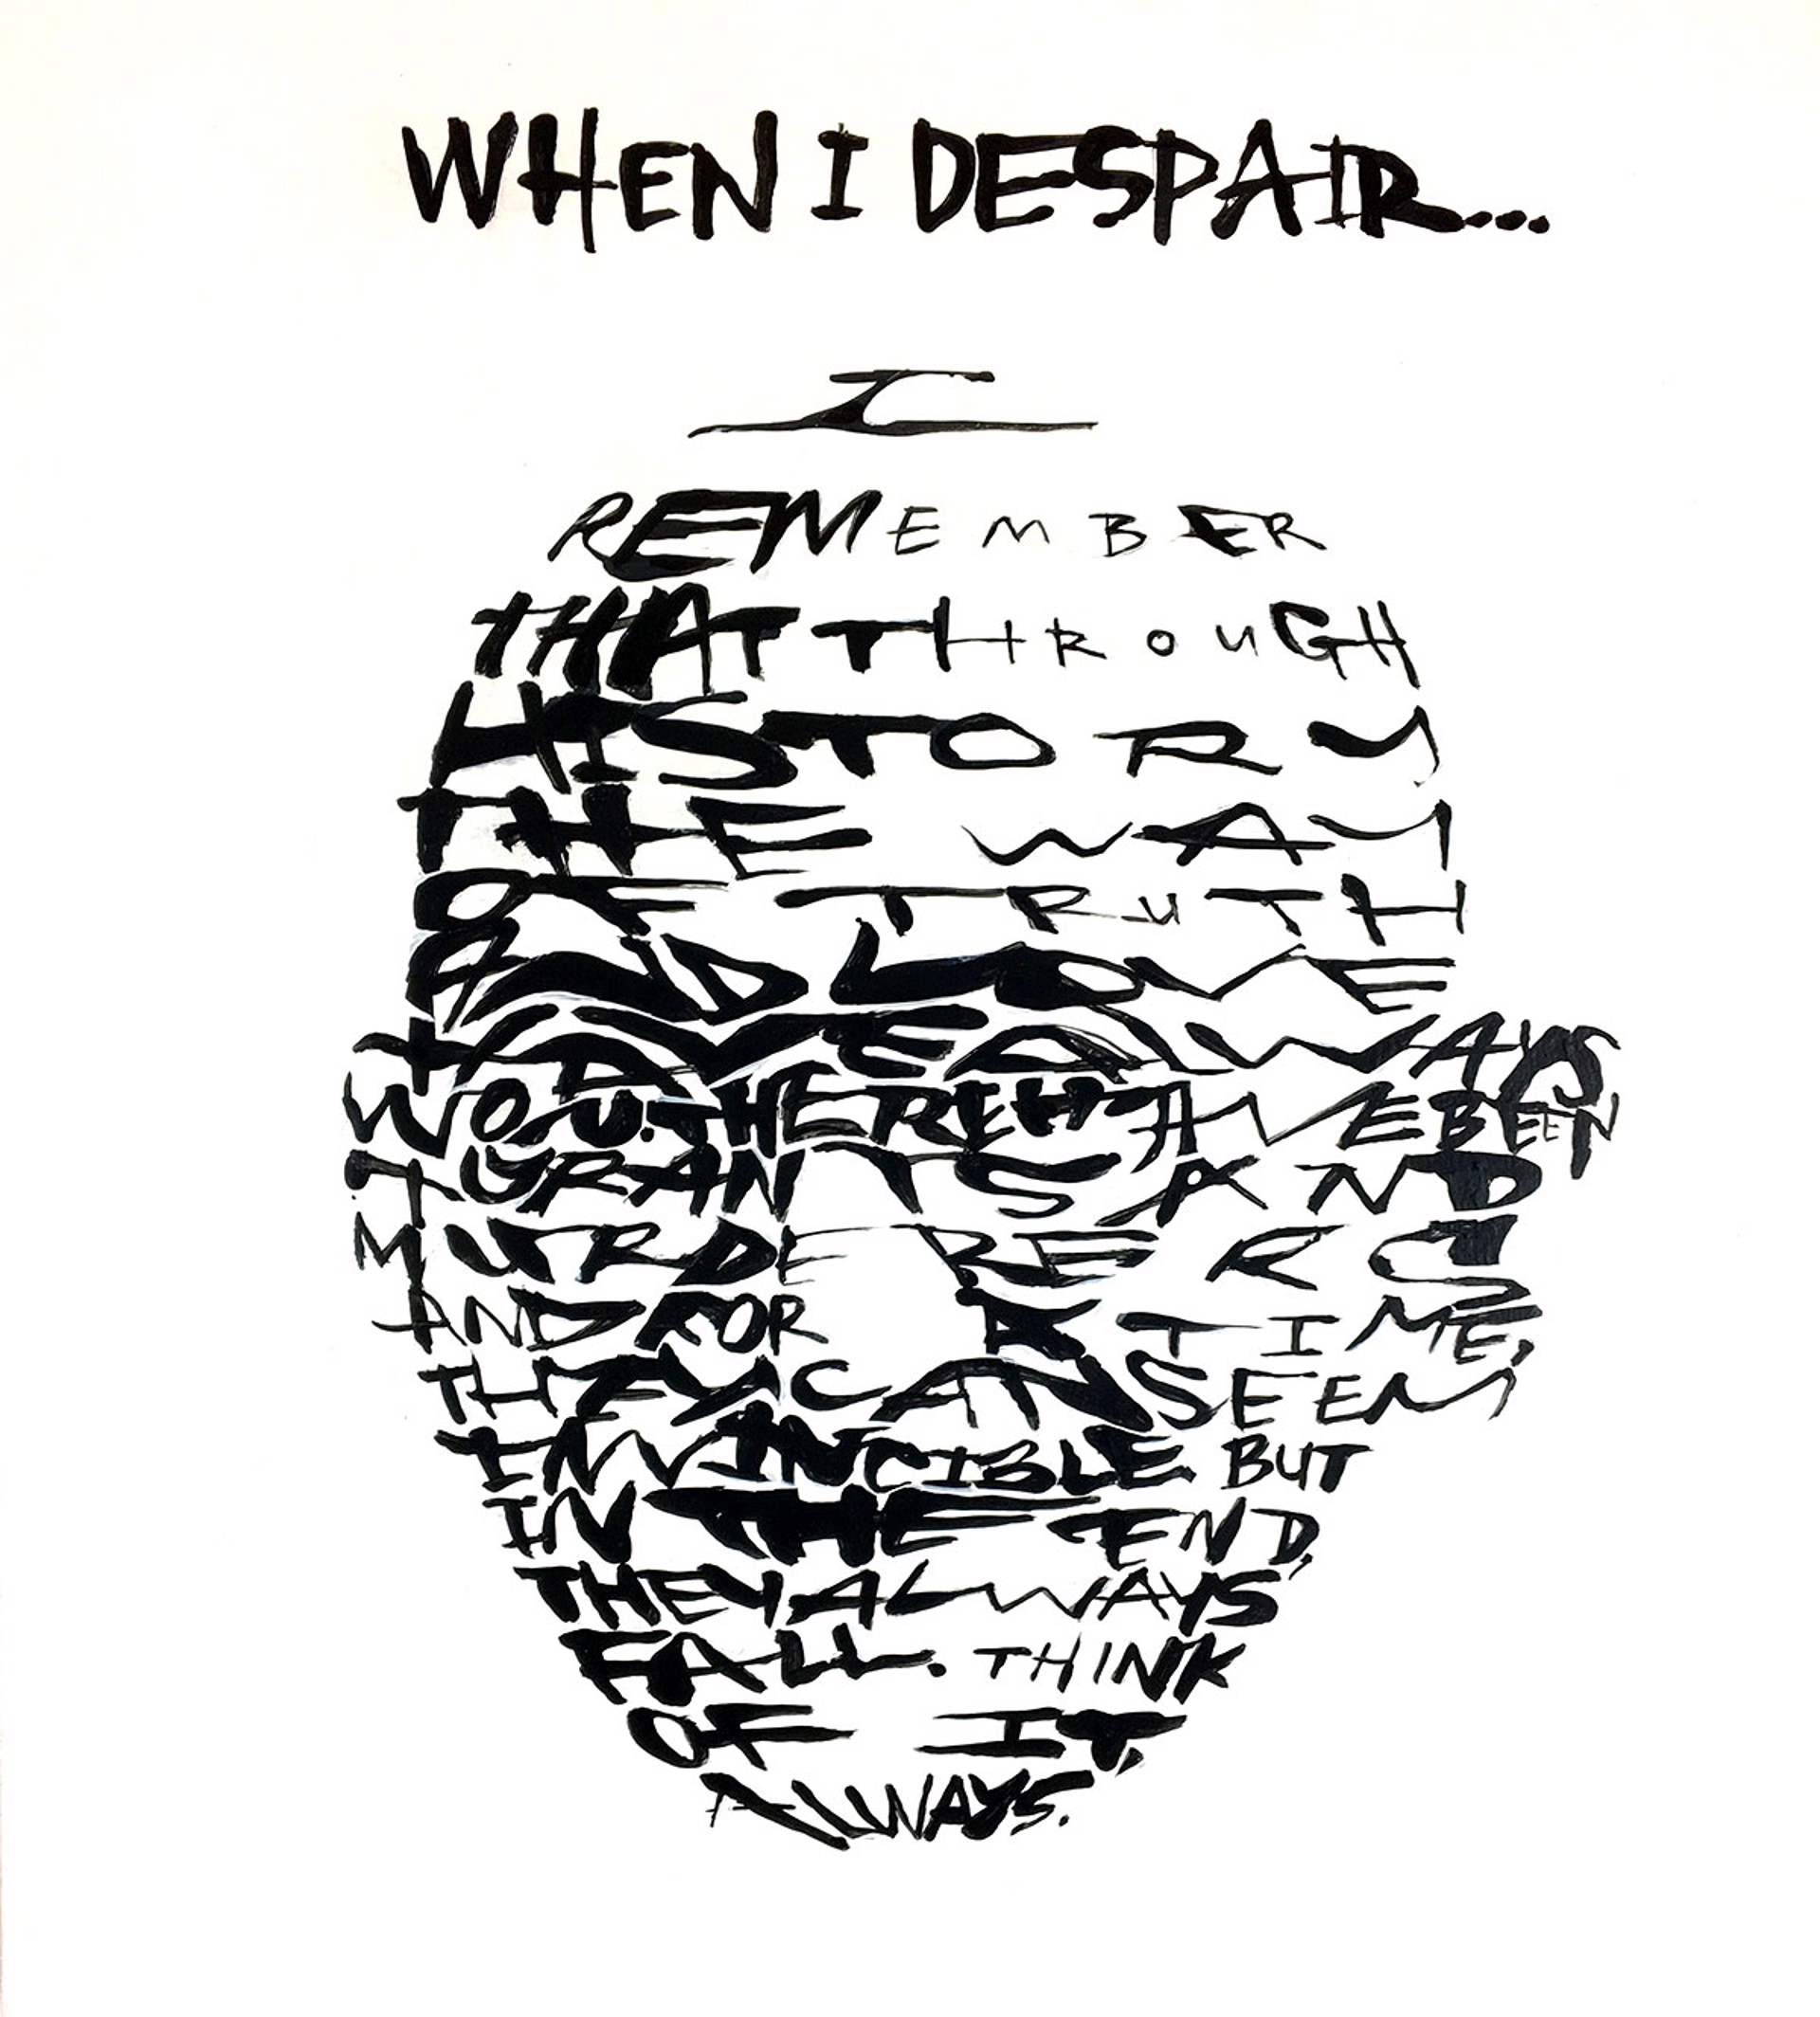 """When I despair..."" -  (Mahatma Gandhi) by David Hollier"